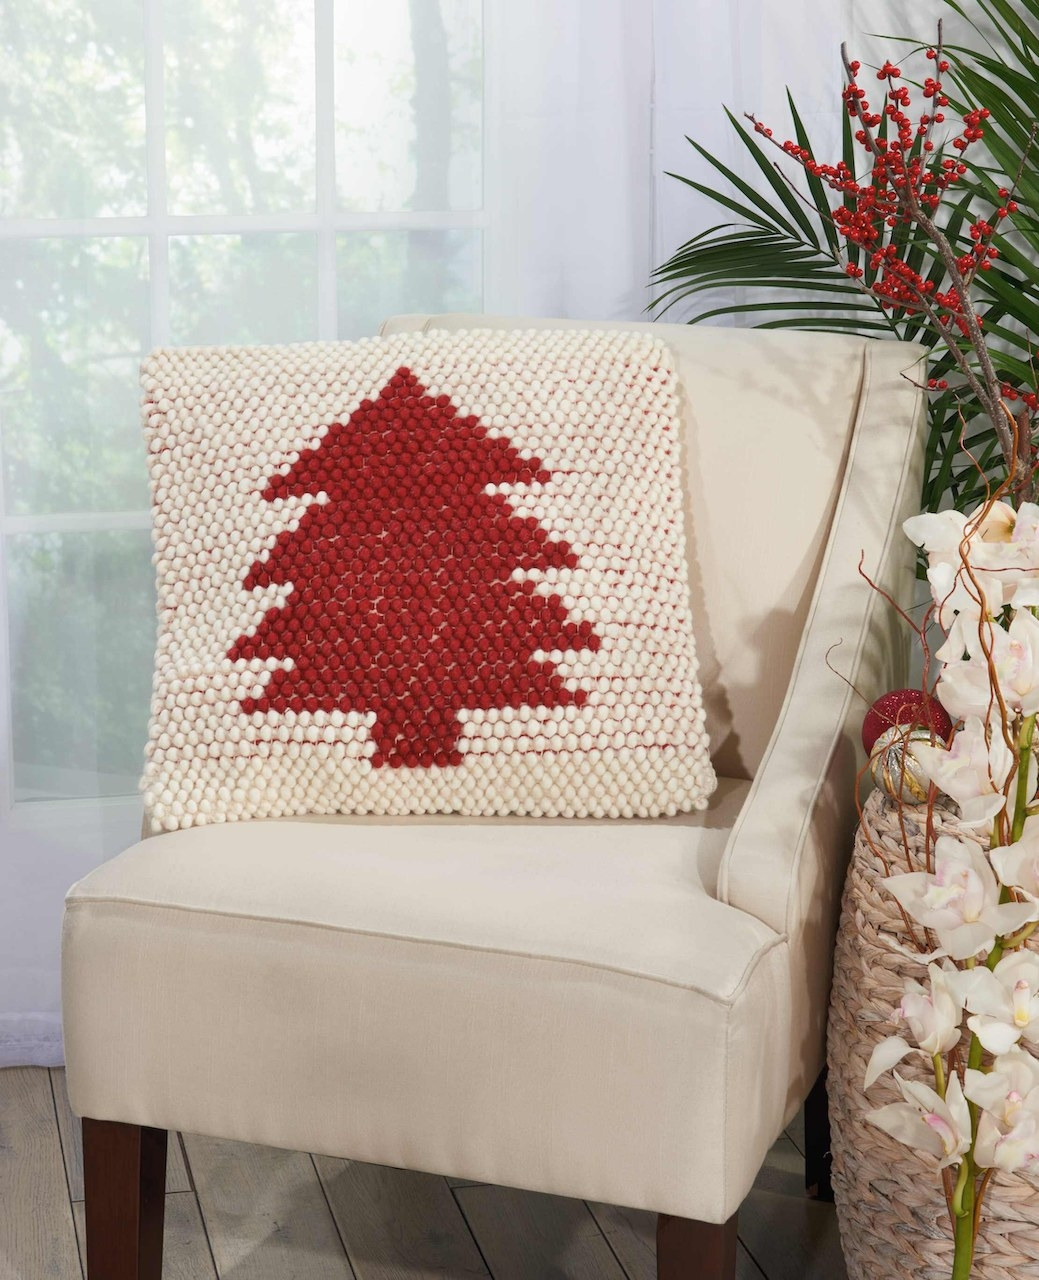 The ivory pillow, with a red Christmas tree on the front of it, resting on a chair